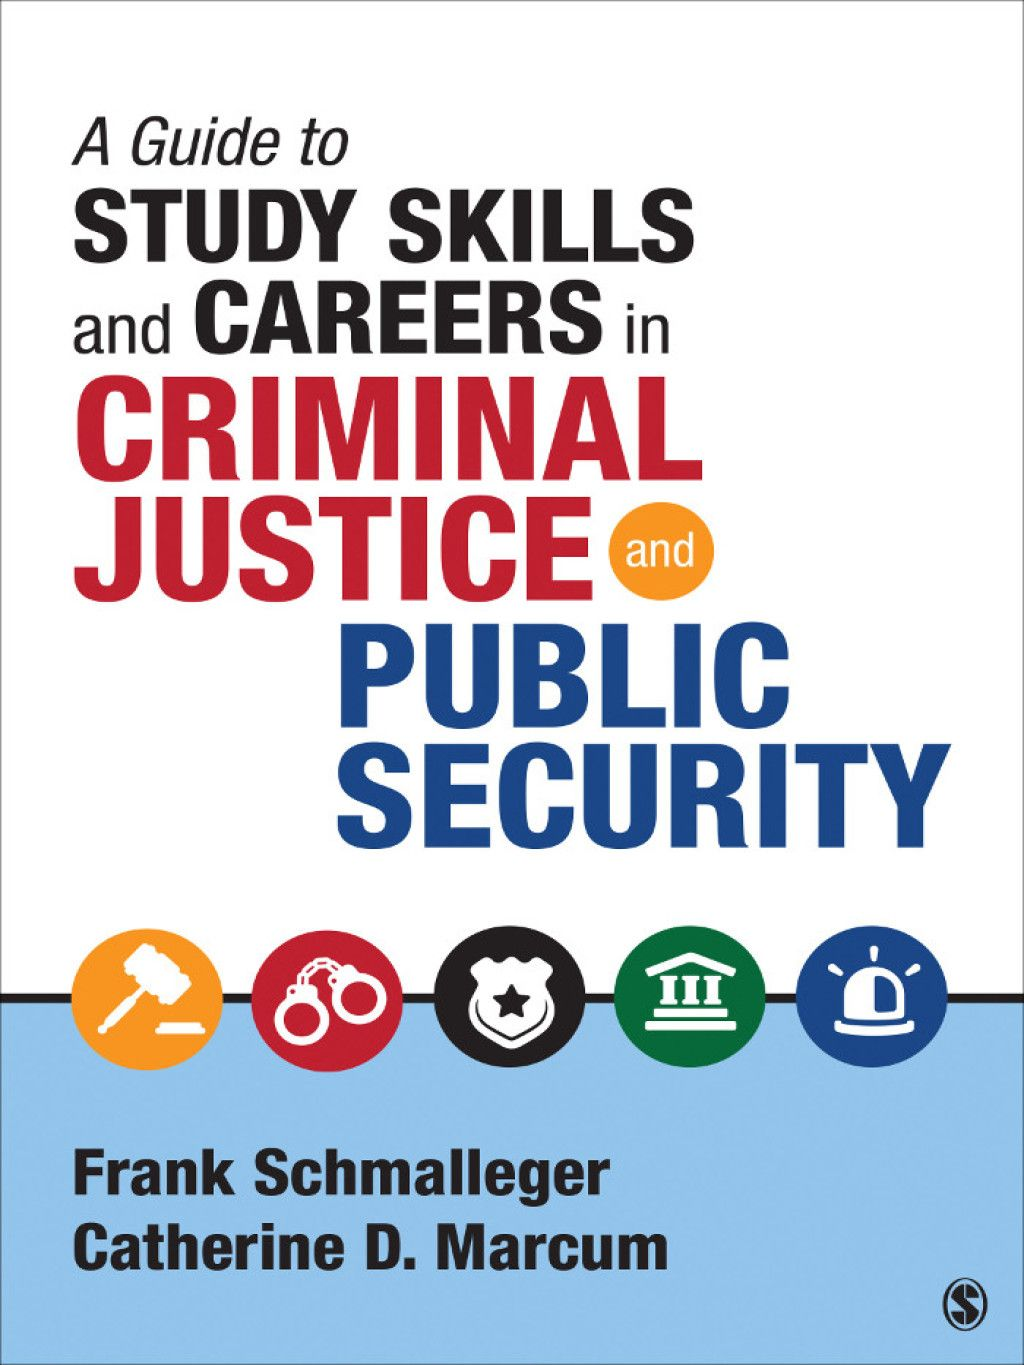 A Guide To Study Skills And Careers In Criminal Justice And Public Security Ebook Rental Study Skills Criminal Justice Public Security